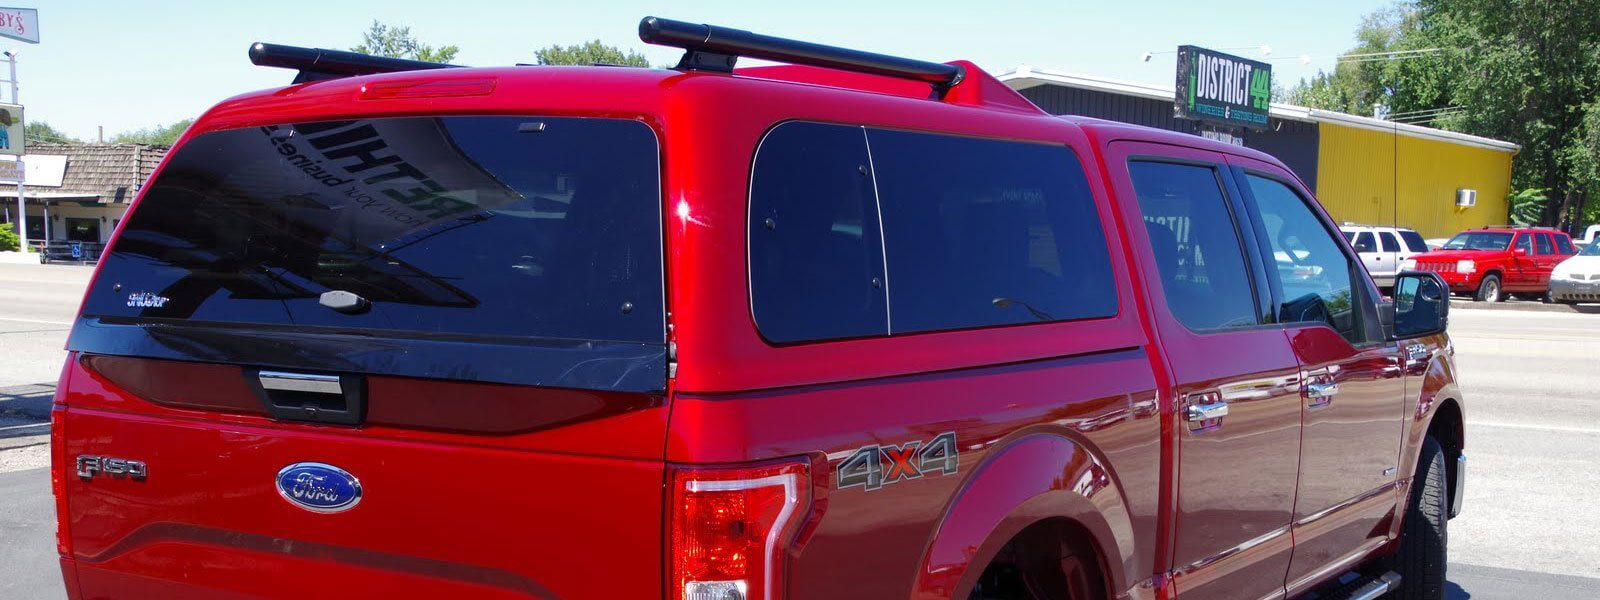 Lumber/Roof Racks, Running Boards